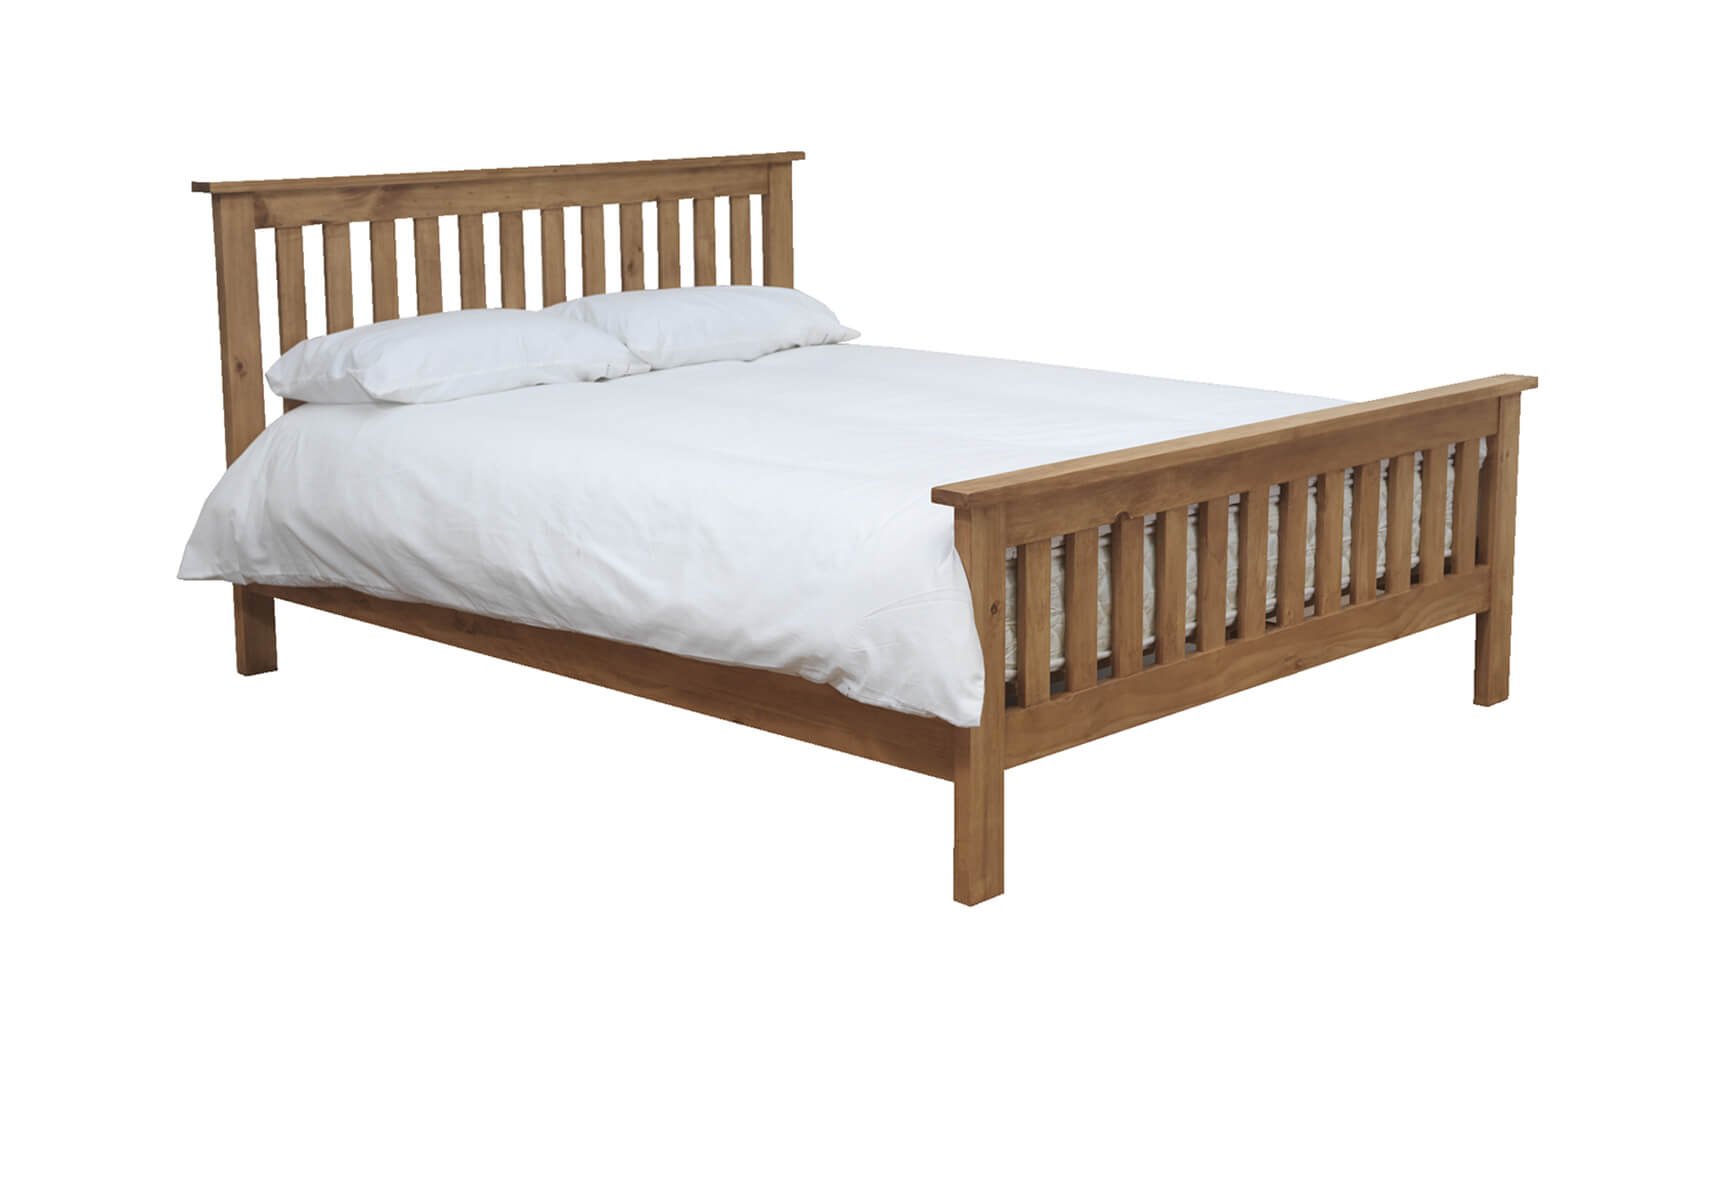 Double Beds Beds Bed Frames Bedroom